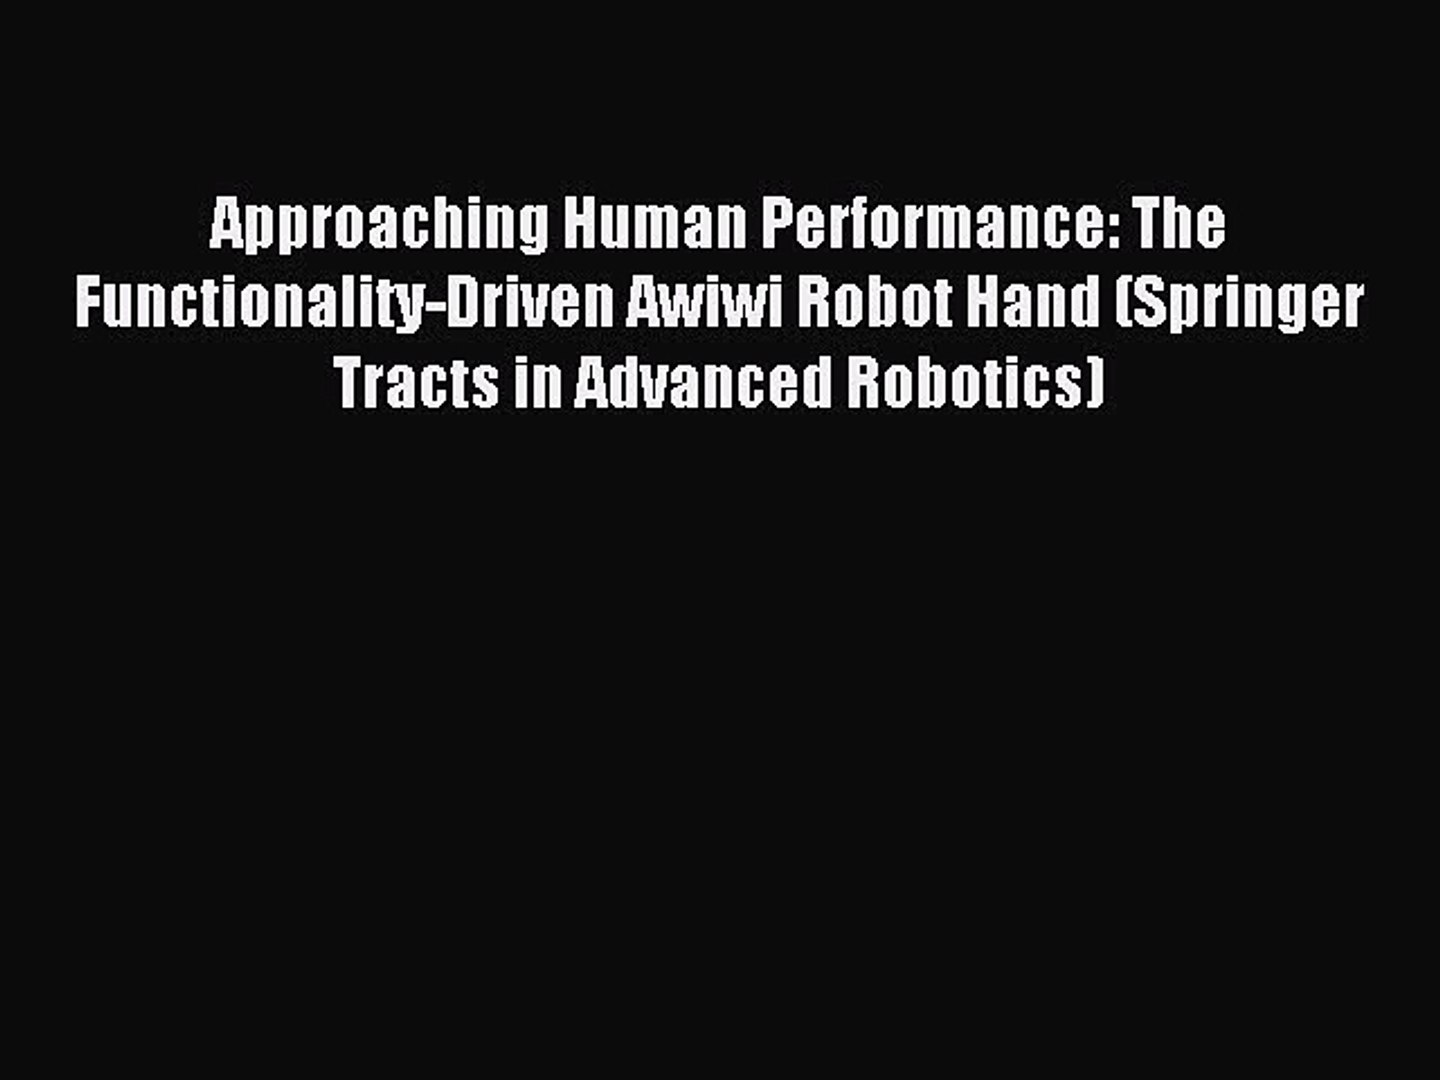 Approaching Human Performance: The Functionality-Driven Awiwi Robot Hand